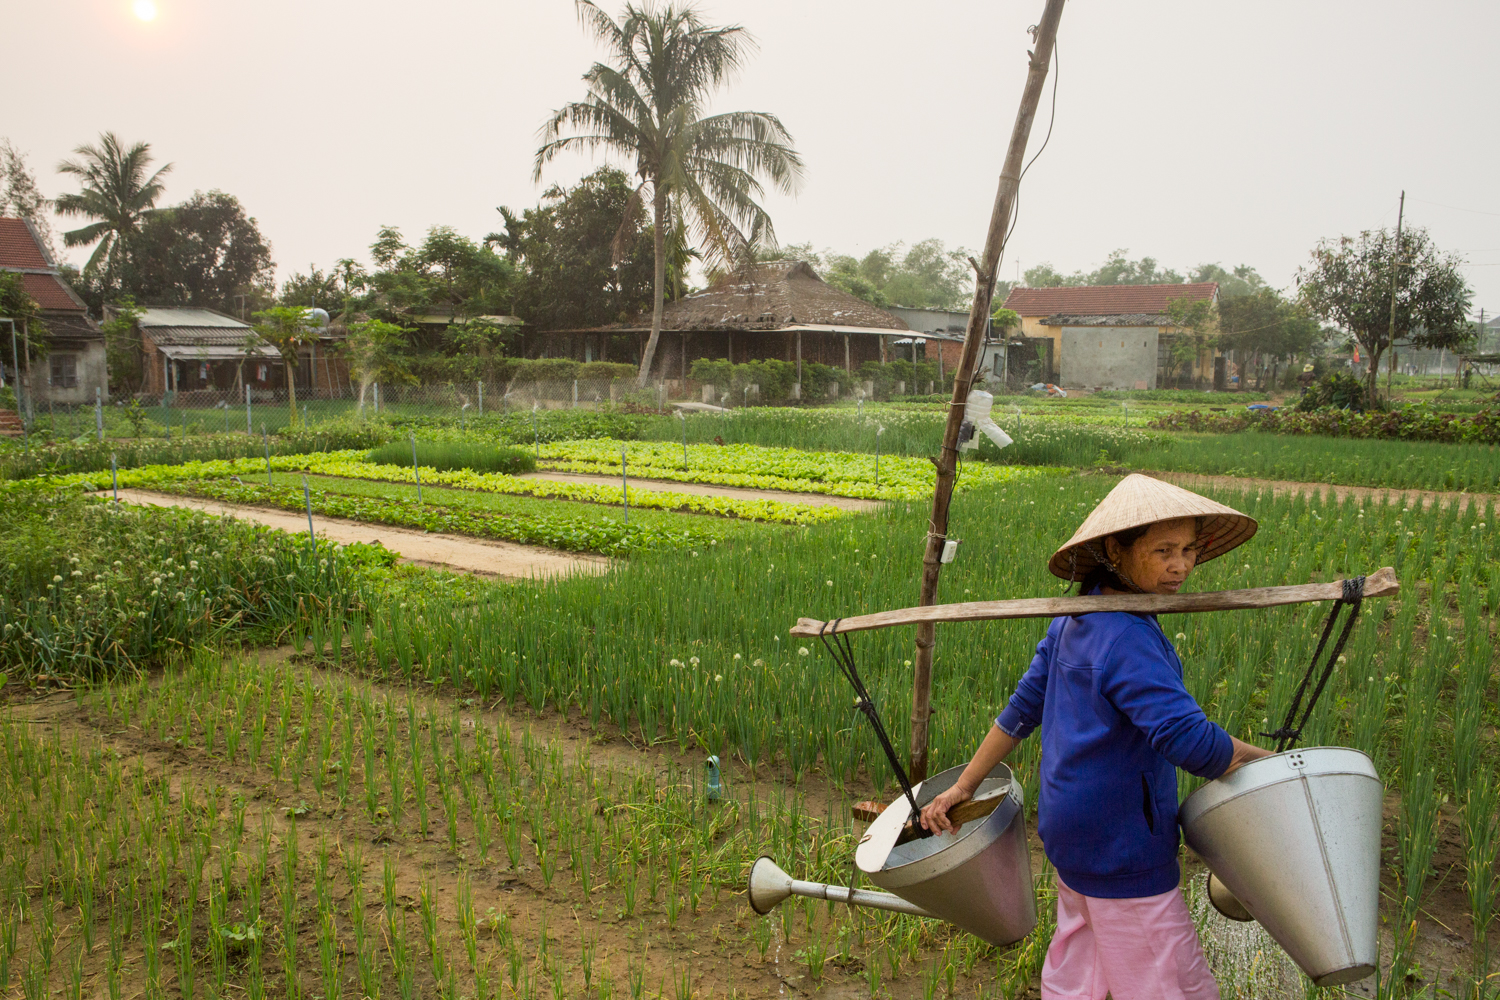 In a Hoi An village, a woman carries two watering cans on her shoulders, as she scans her fields.